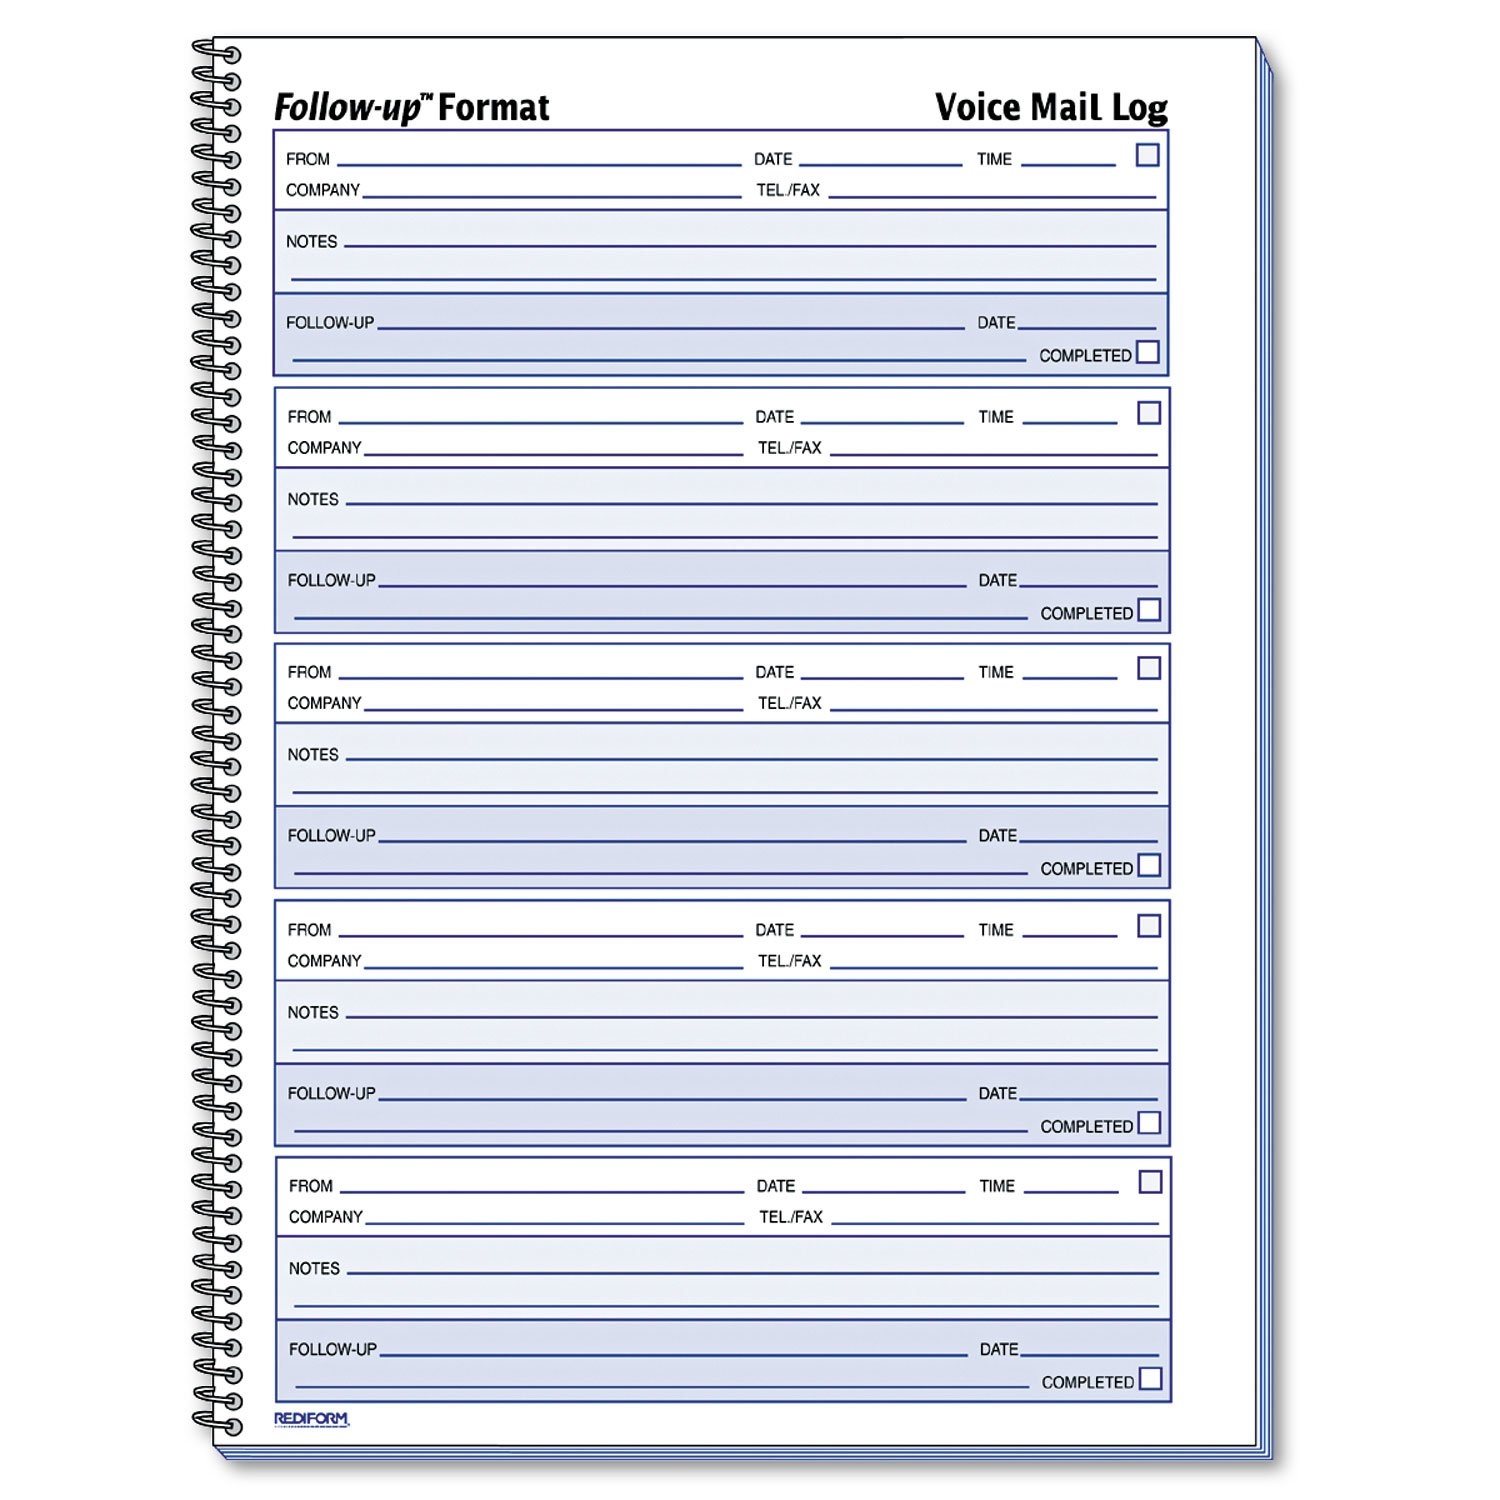 Rediform 51114 Voice Mail Wirebound Log Books 8 x 10 5/8 500 Sets/Book